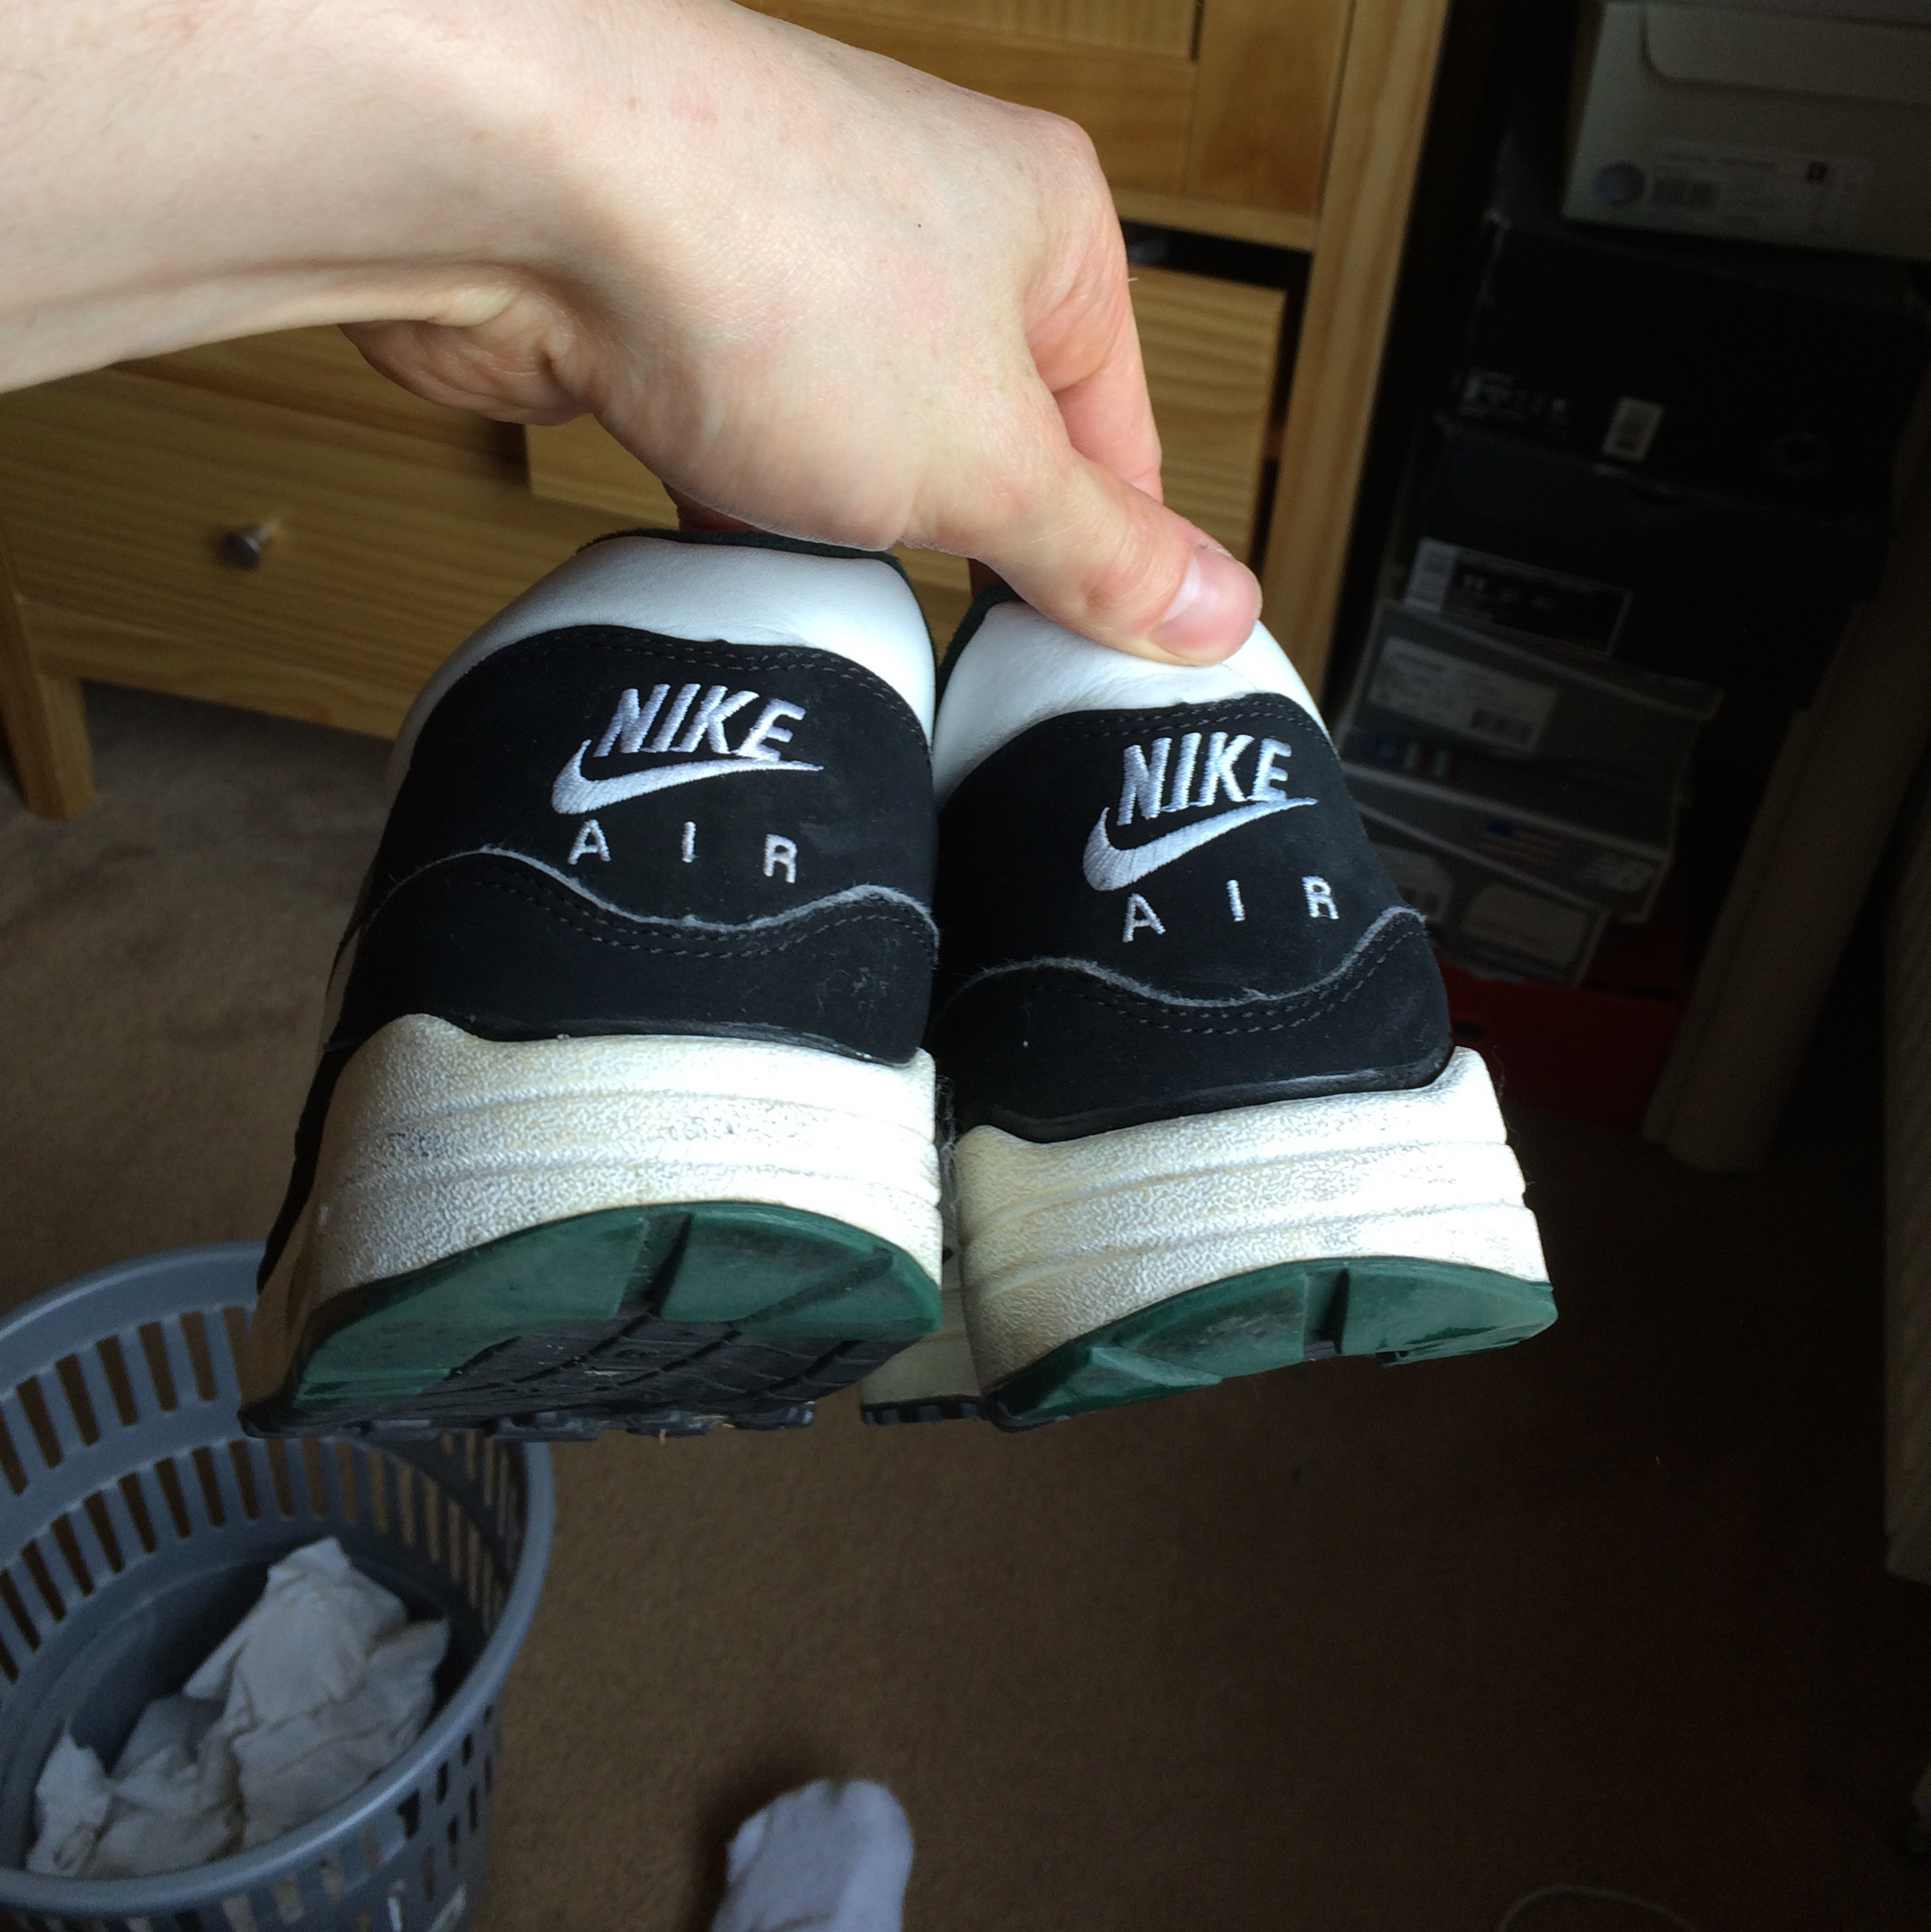 Nike air max 1 forest green Very rare From Depop